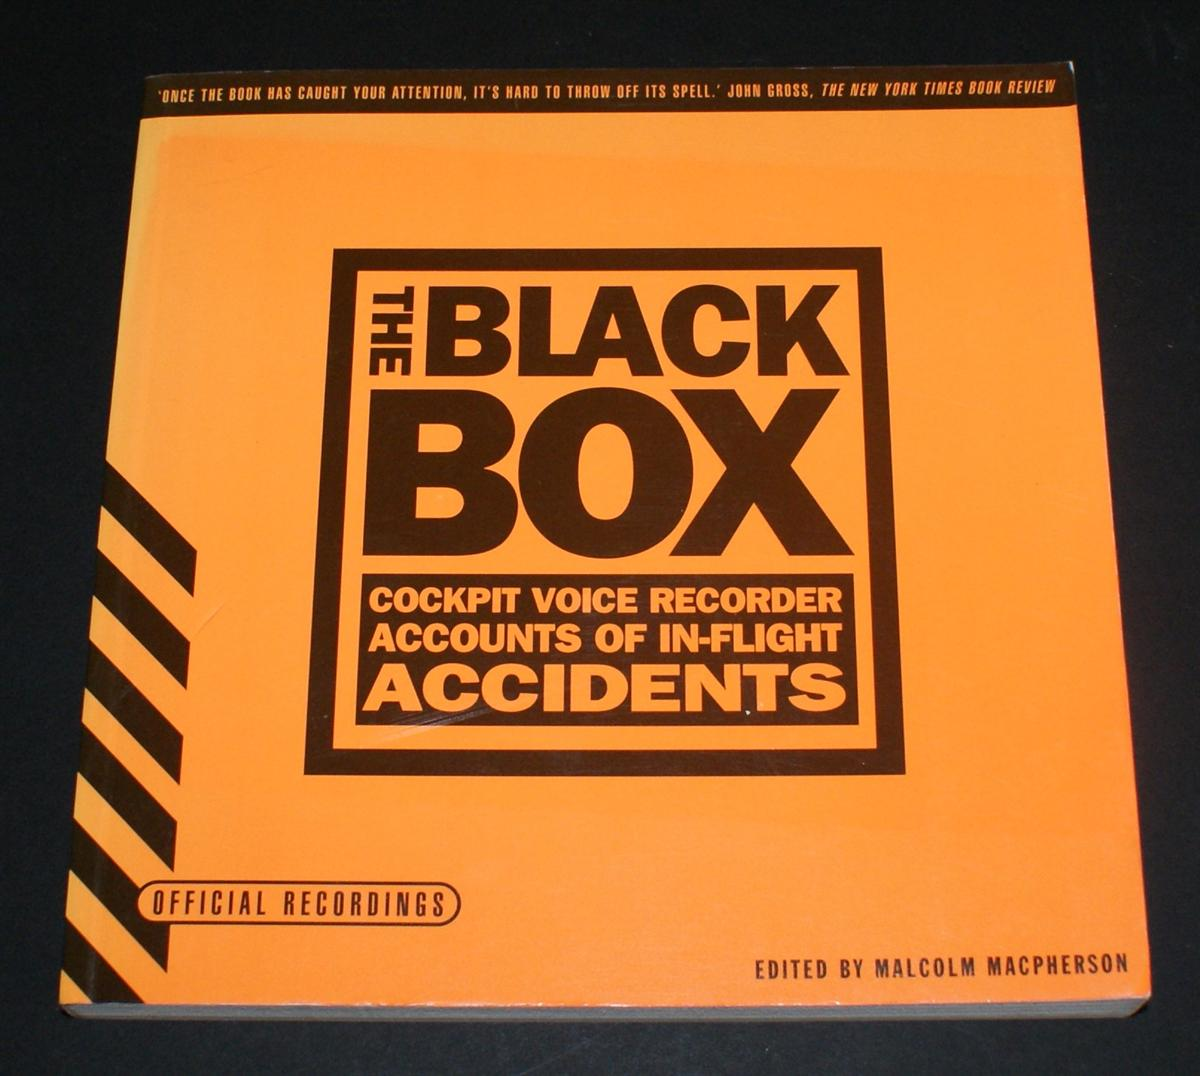 Image for The Black Box; Cockpit Voice Recorder Accounts of In-Flight Accidents